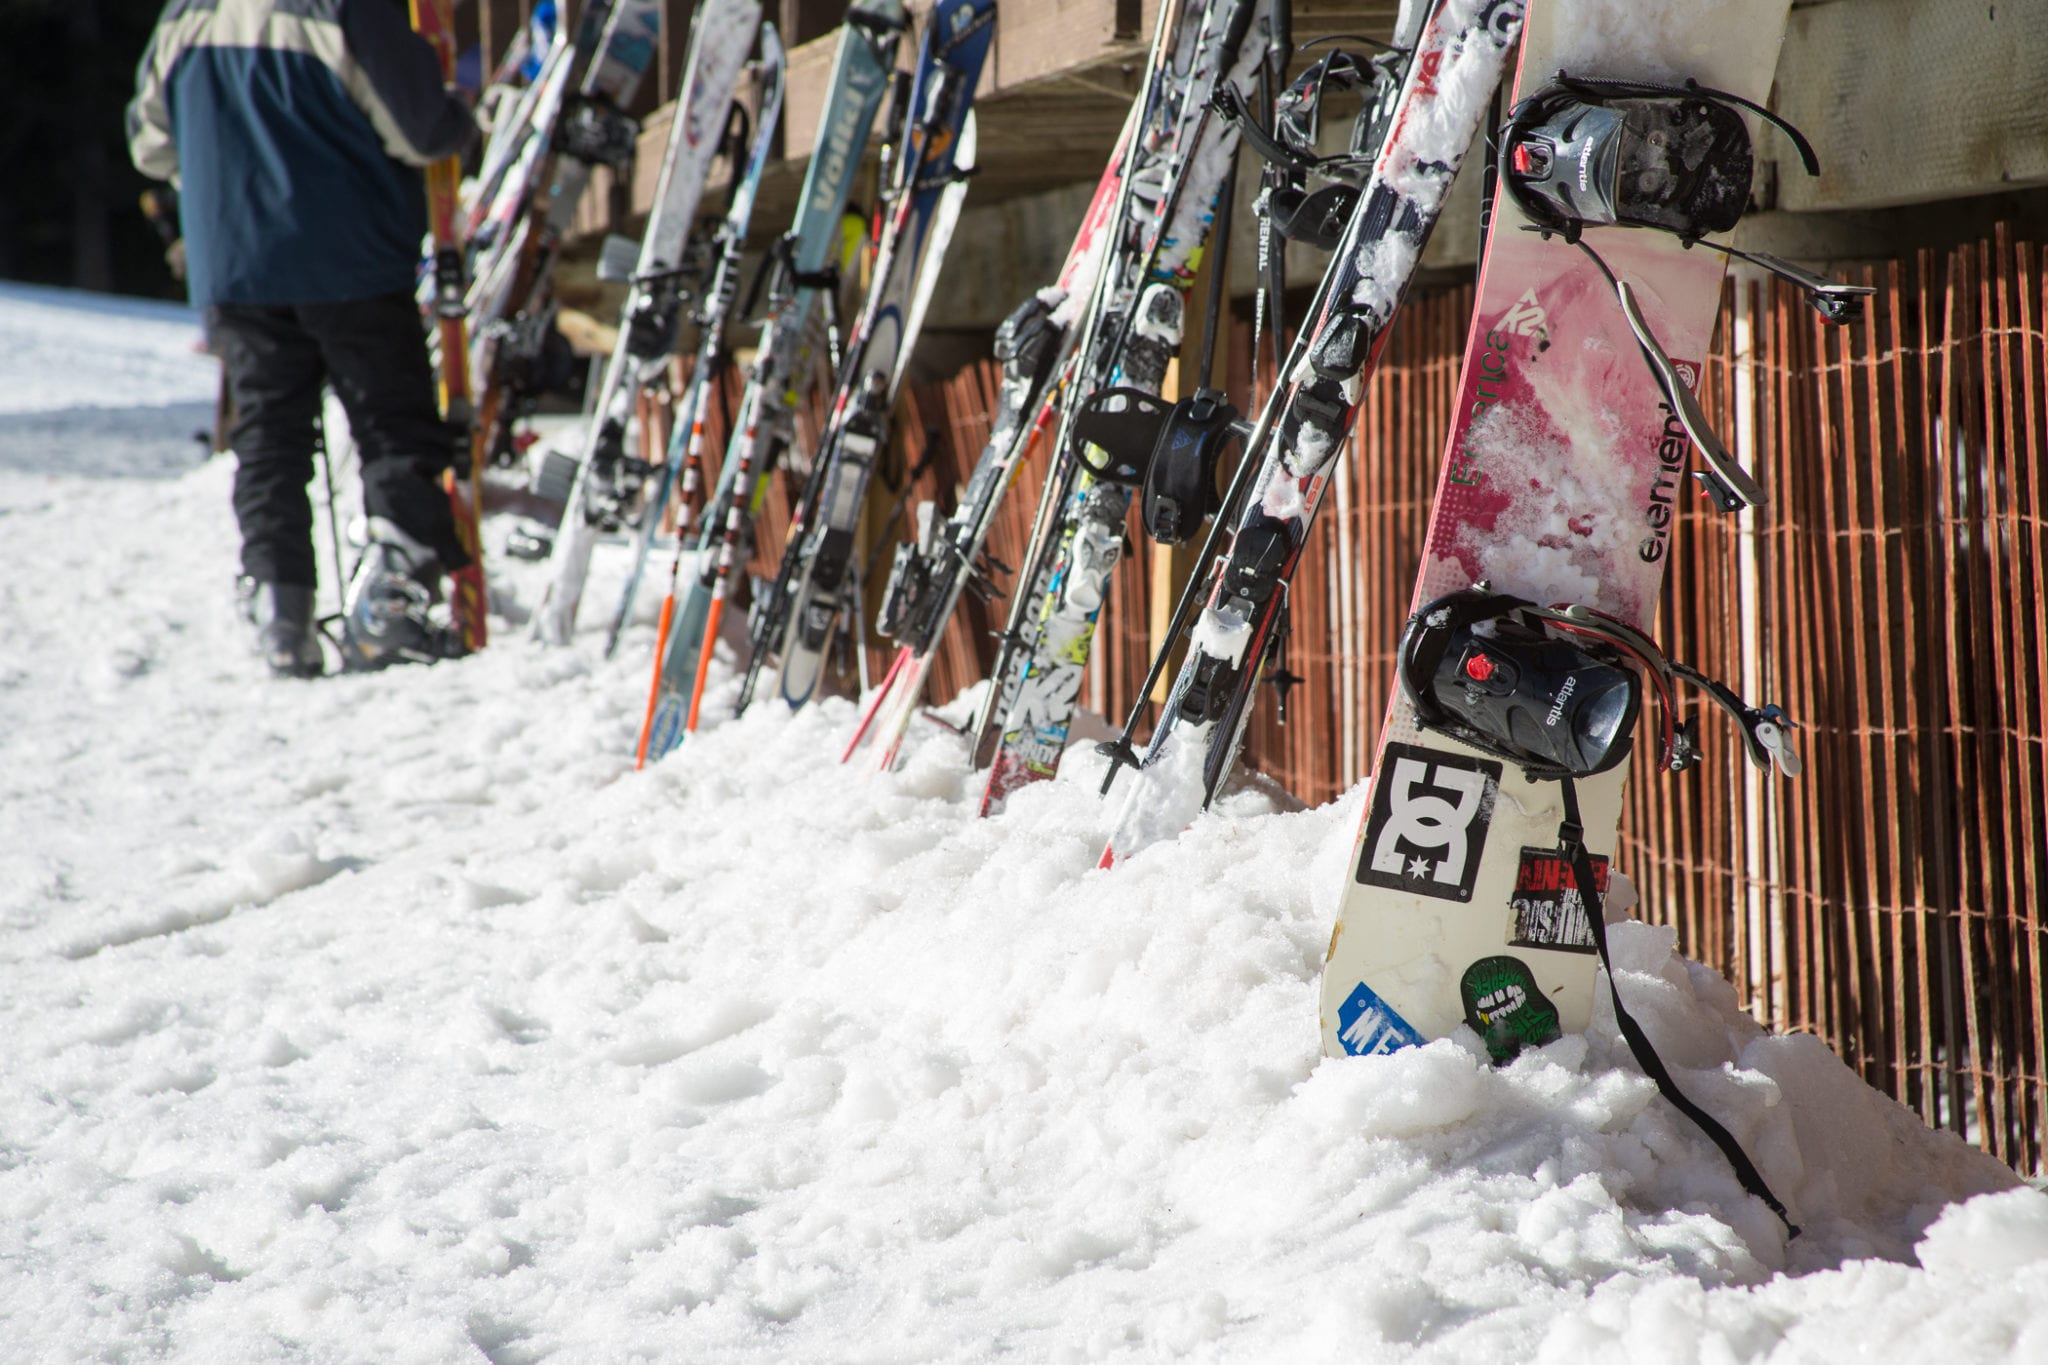 Skis and Snowboard